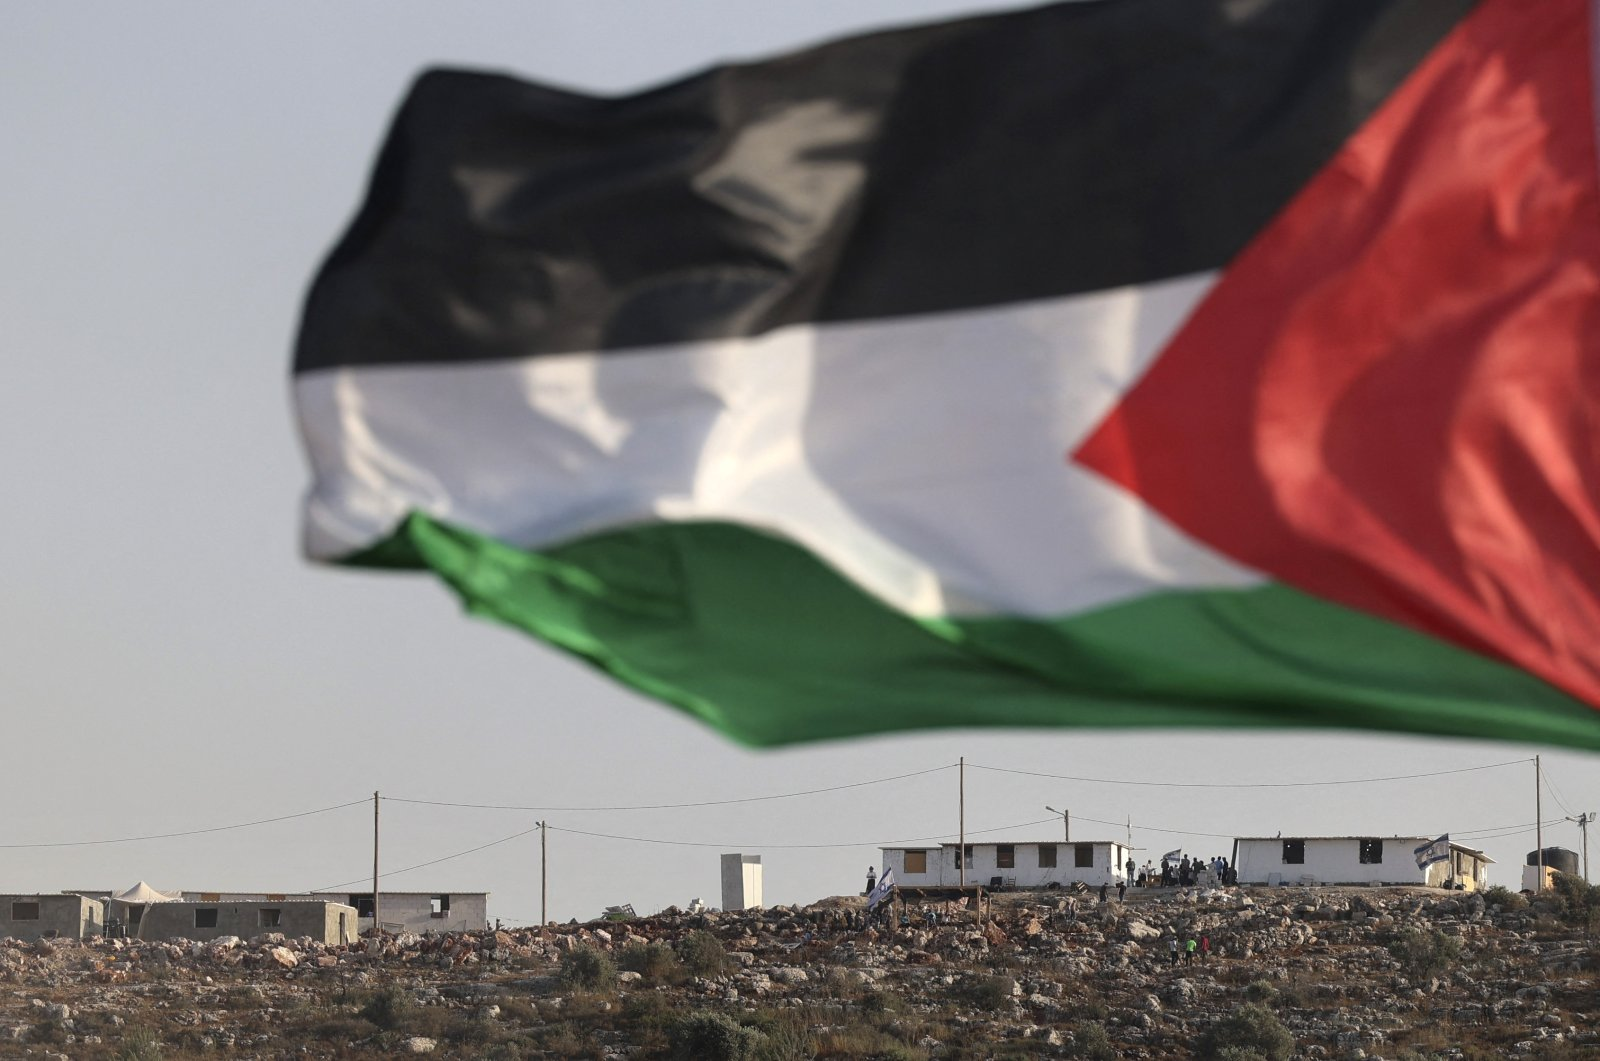 A Palestinian flag flutters across the valley from the newly built Israeli settlers' outpost of Eviatar, near the village of Beita, south of Nablus, in the occupied West Bank, Palestine, June 13, 2021. (AFP Photo)